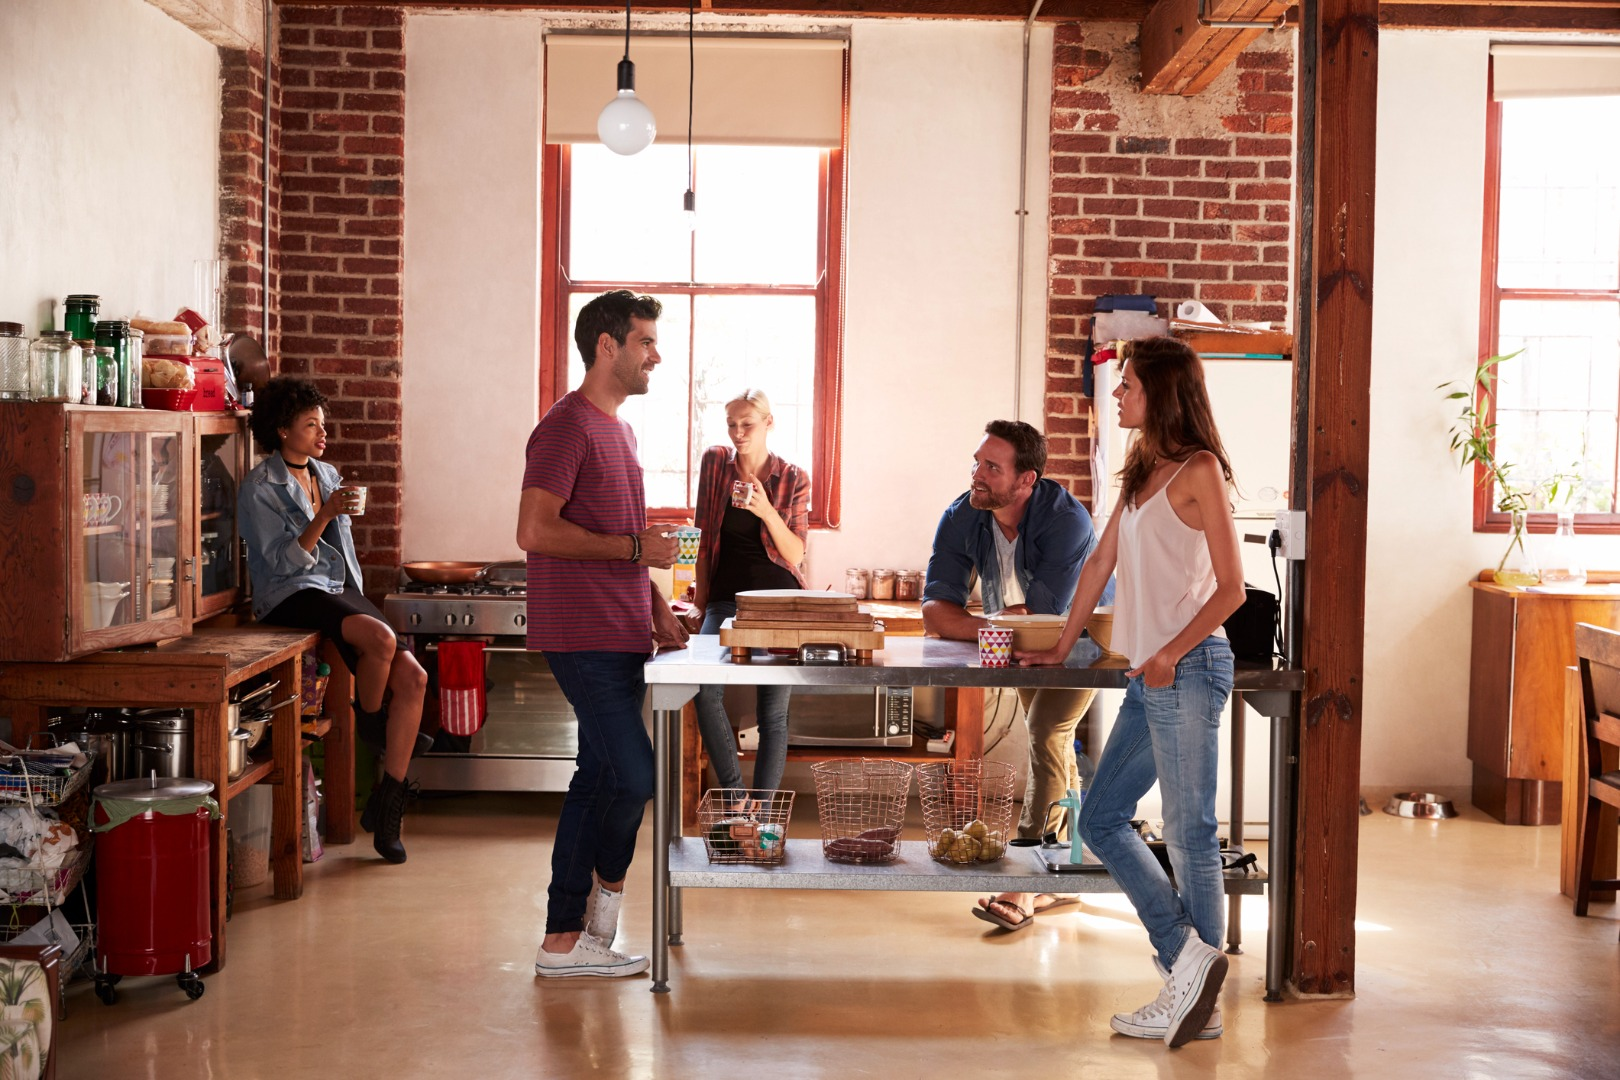 Why is co-living great for the student